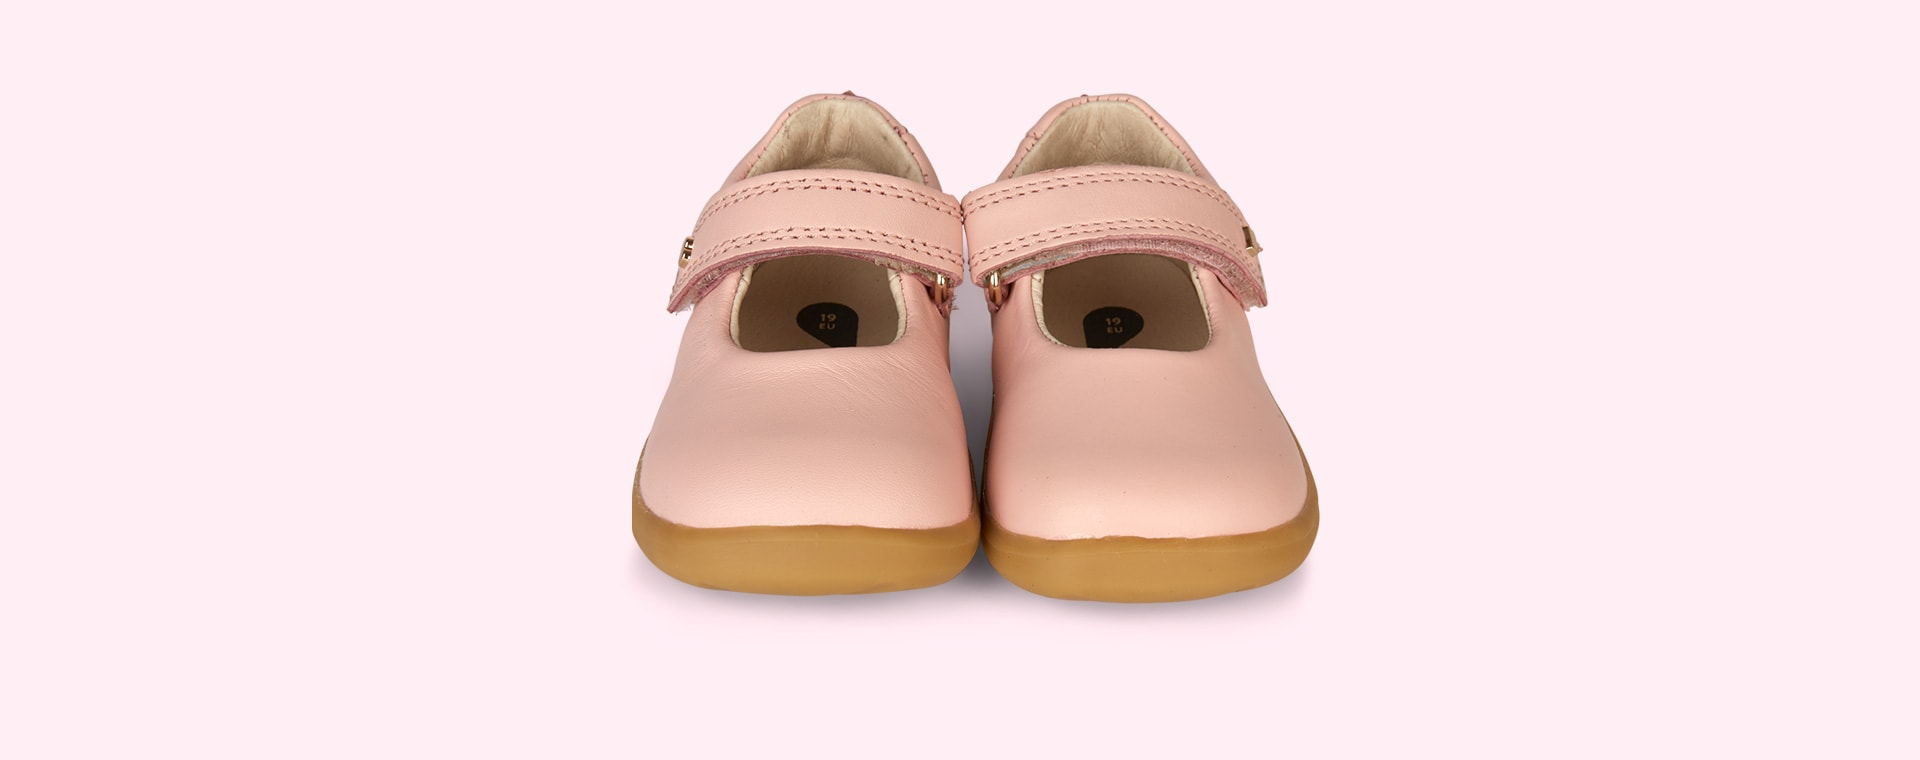 Seashell Bobux Step-Up Delight Mary Jane Shoe